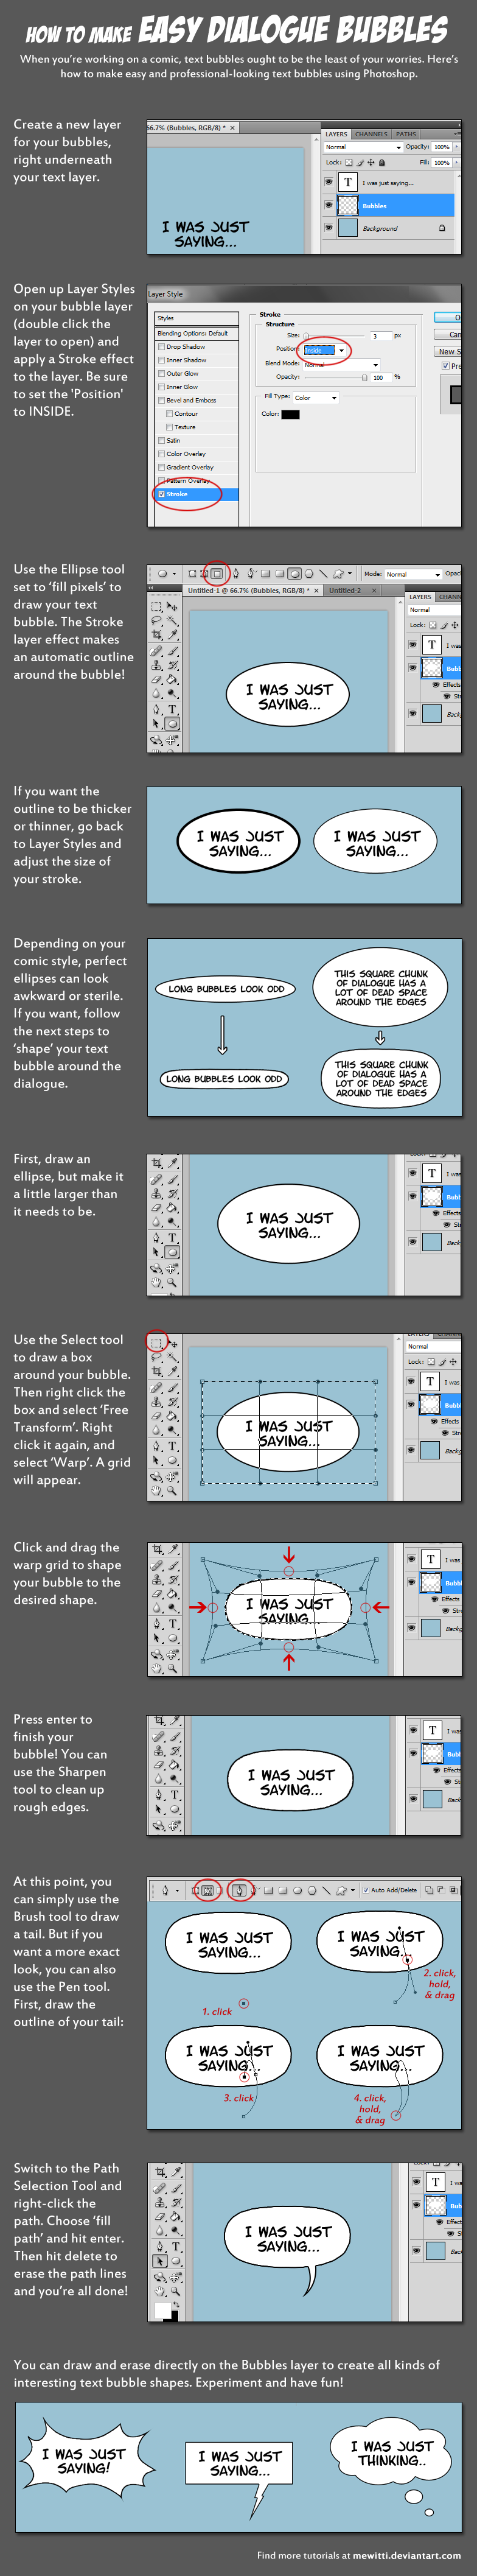 How to Make Easy Dialogue Bubbles